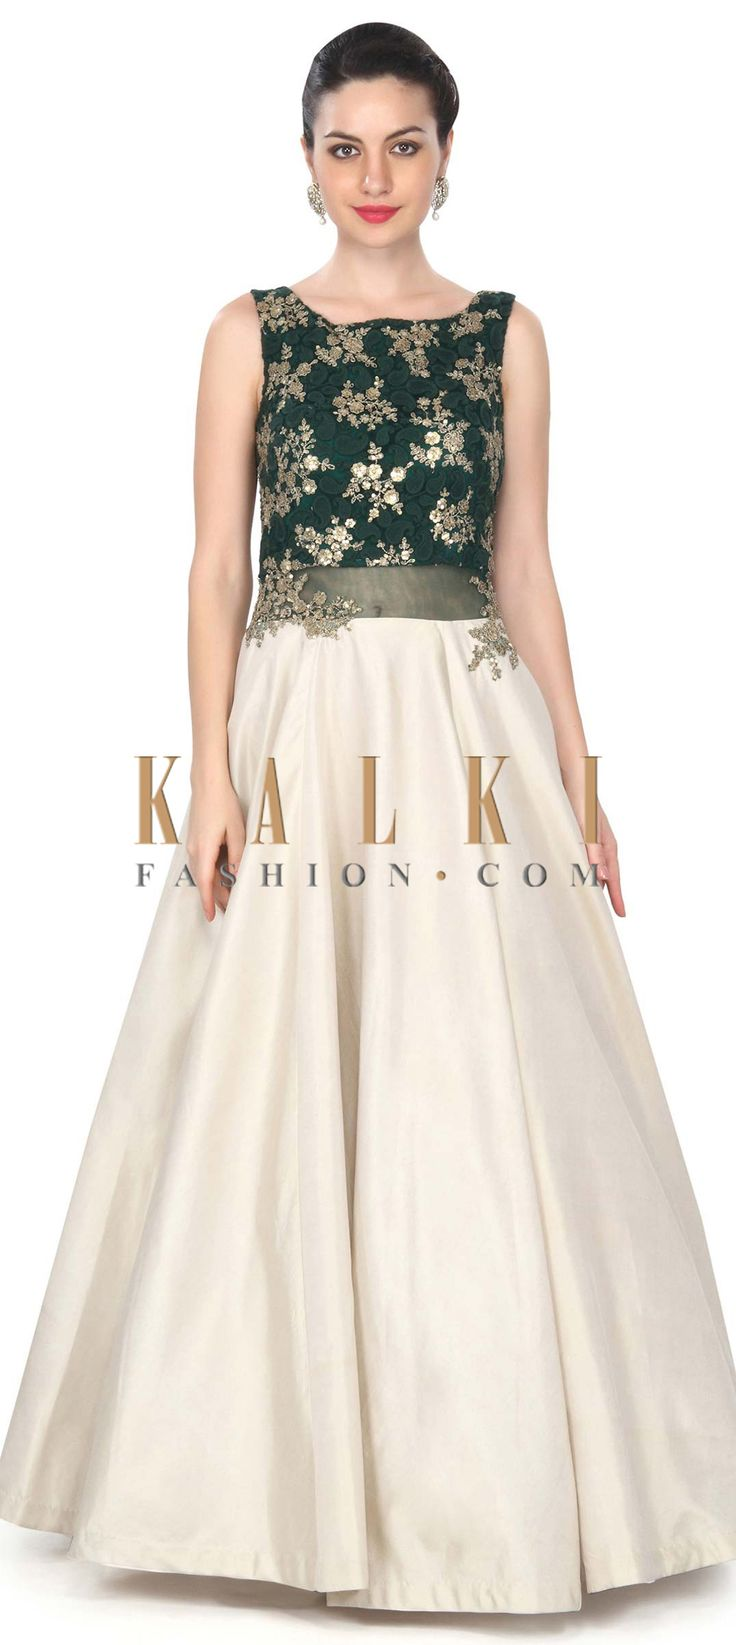 Buy this  Light gold gown with green paisley motif embroidery only on Kalki